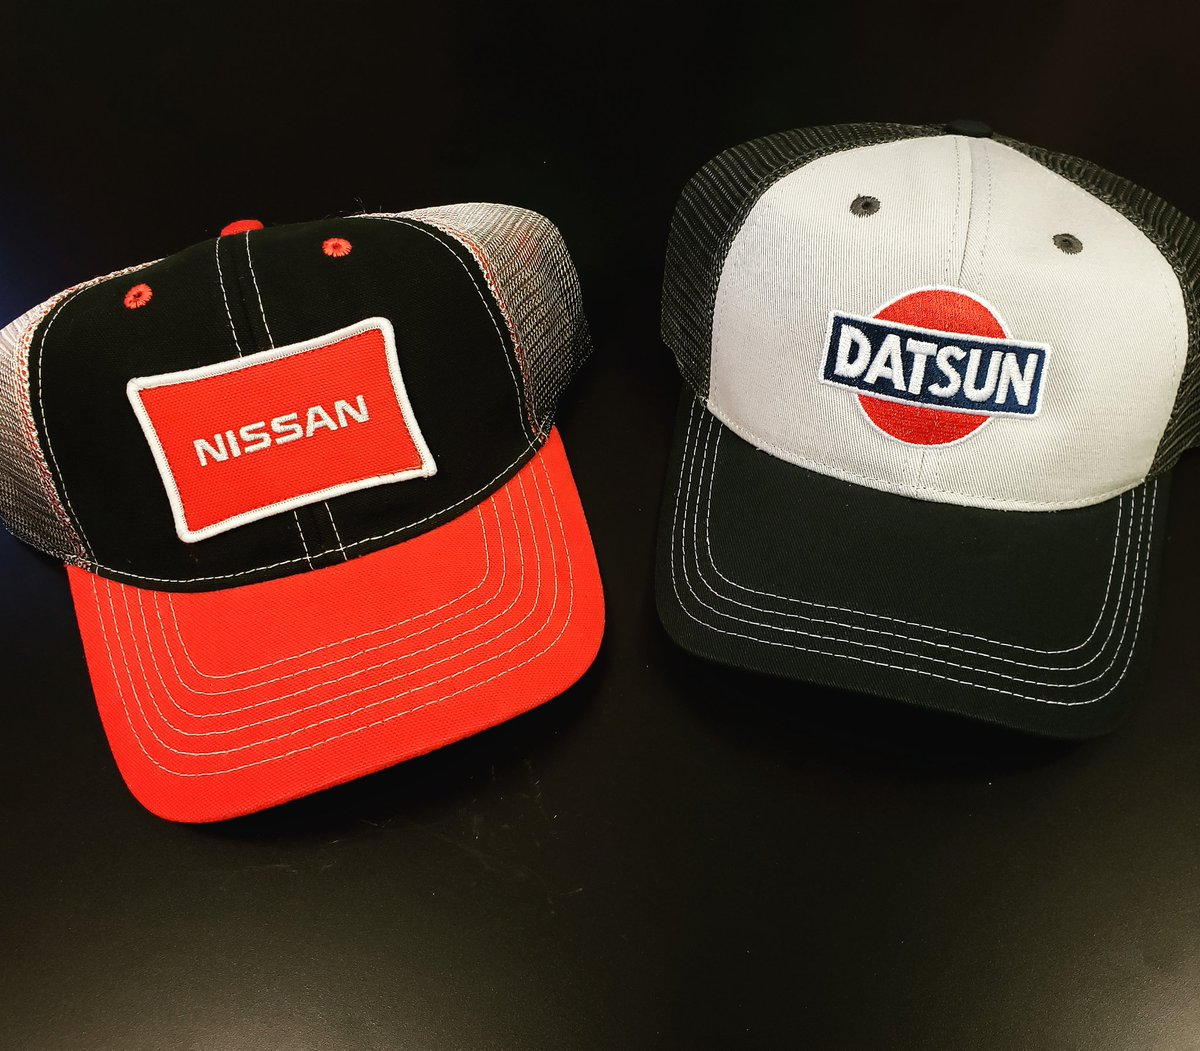 d24e6d582c2 Which Nissan Trucker hat do you like  Nissan or Datsun  Both available in  the profile link  partsfornissans  parts  datsun  datsun240z  datsun260z ...